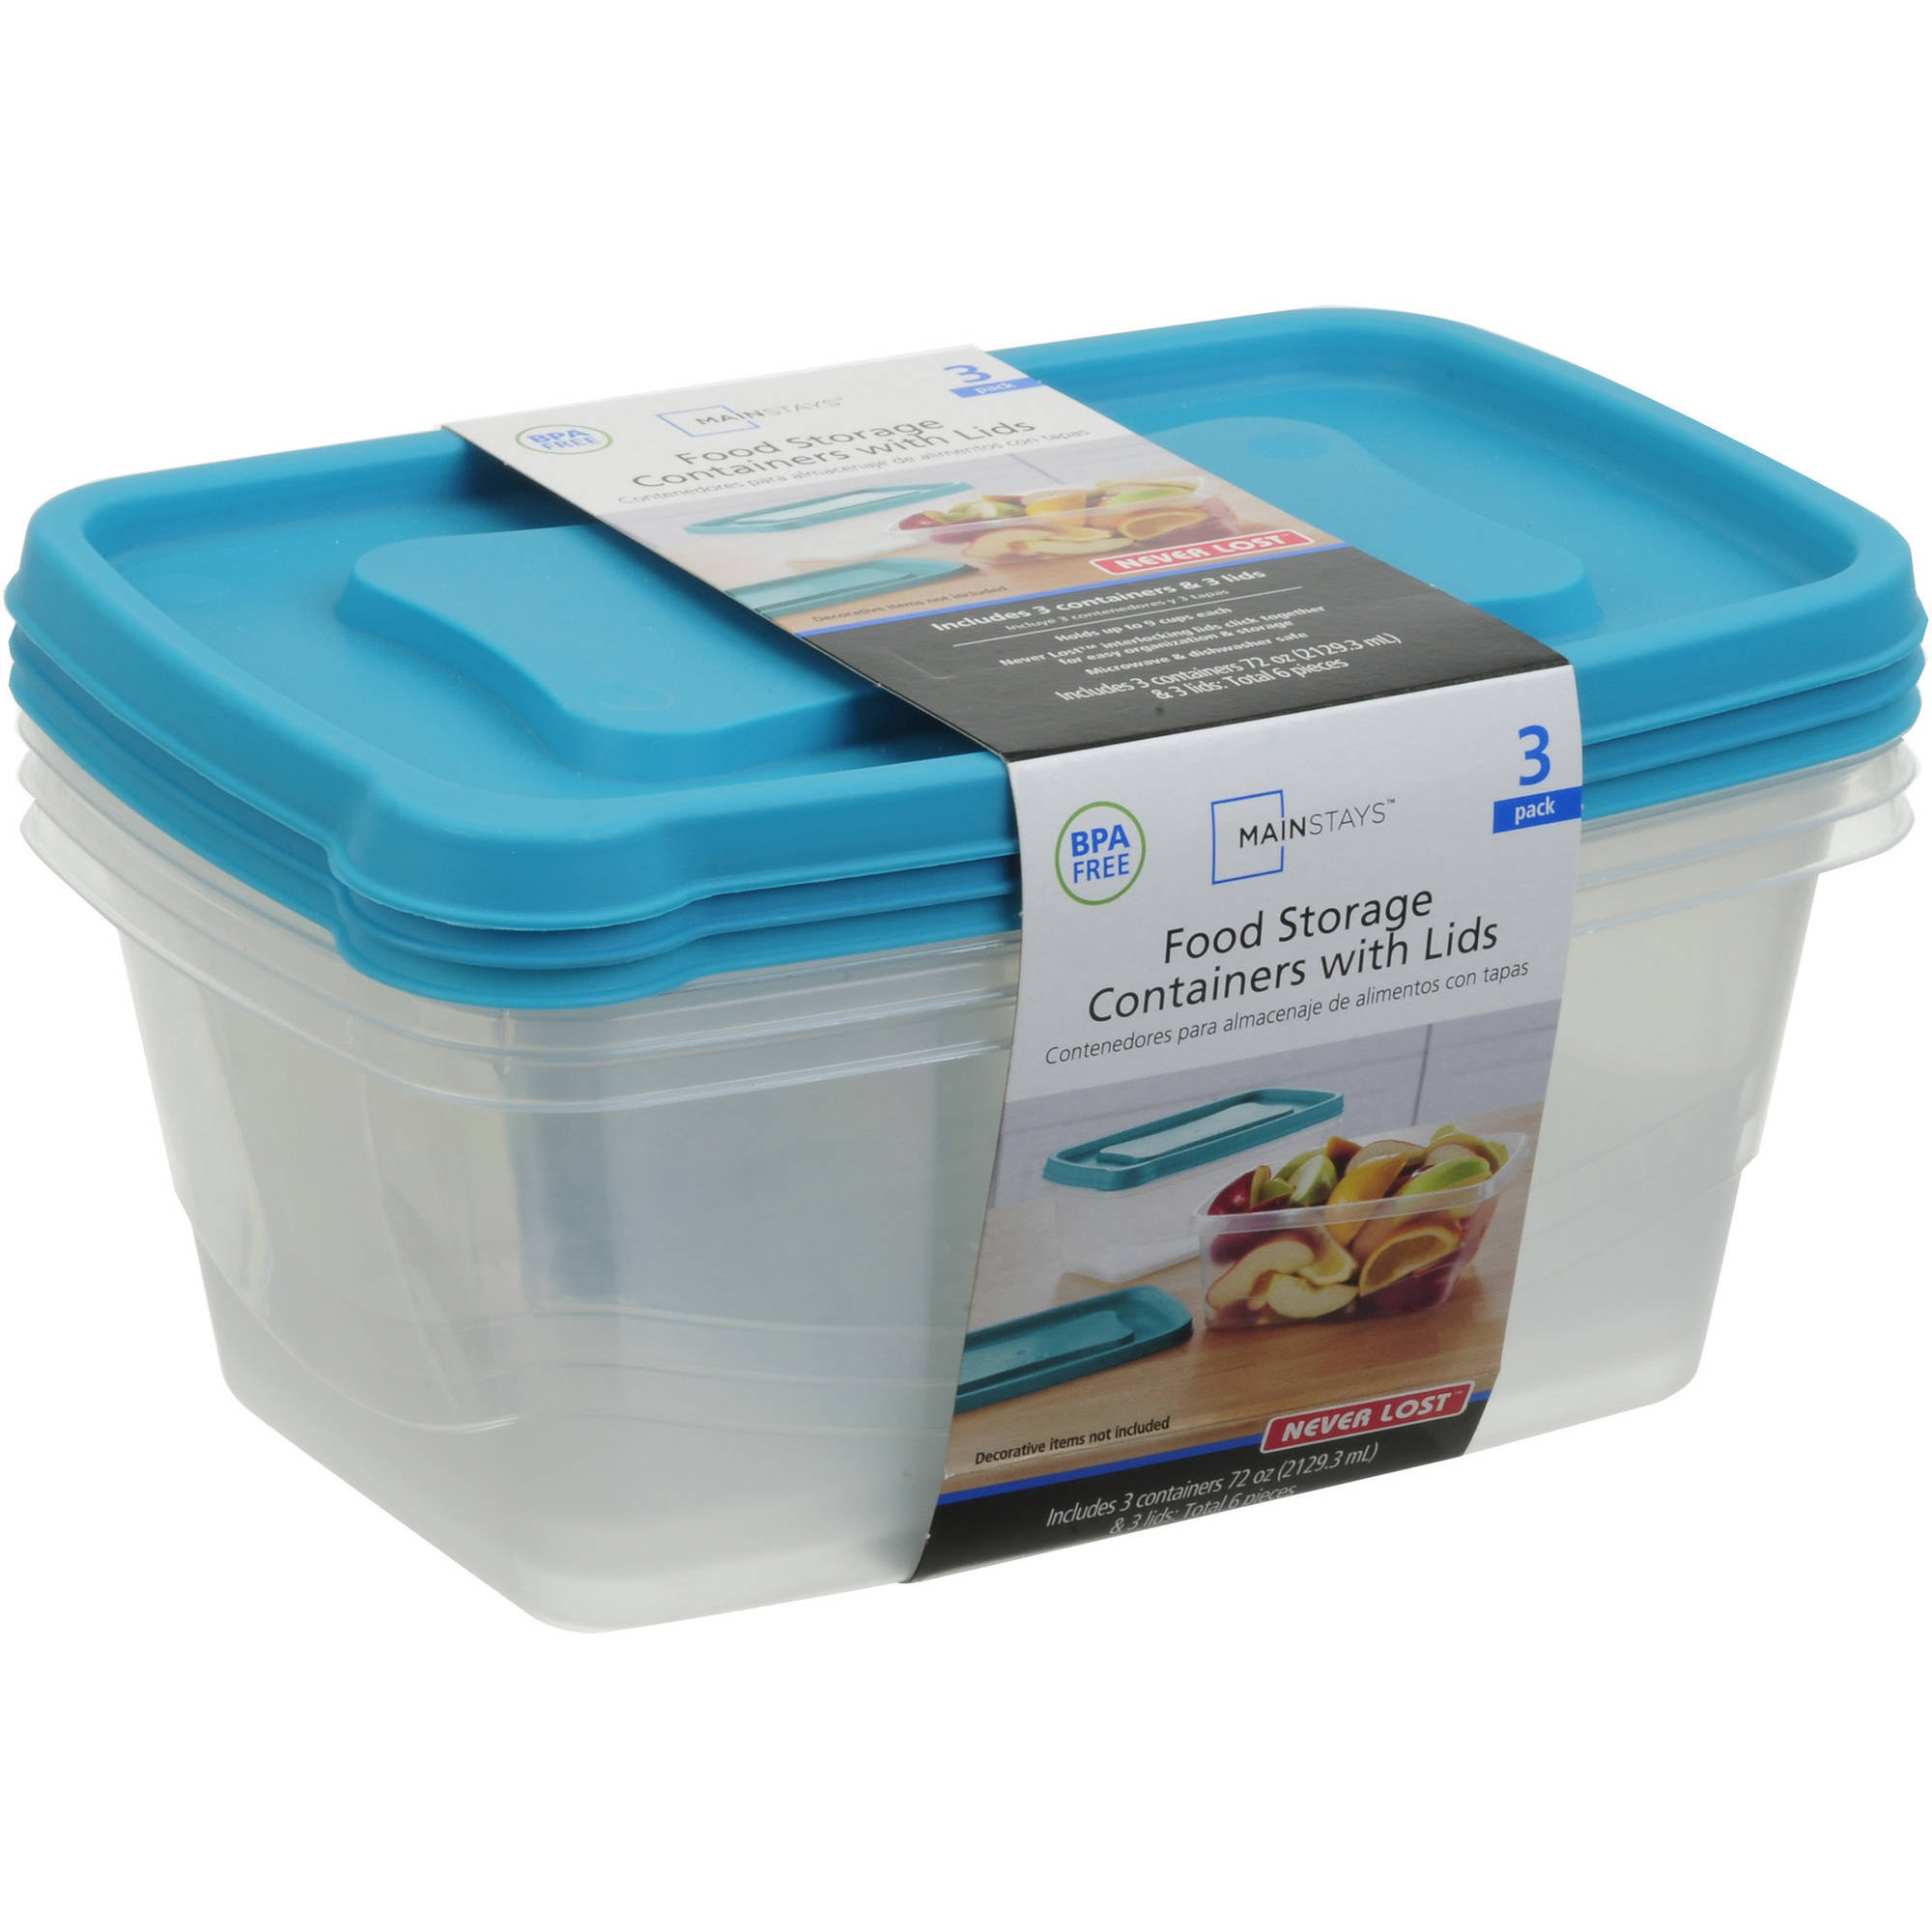 Mainstays 9 Cup Rectangular Food Storage Containers, 3pk